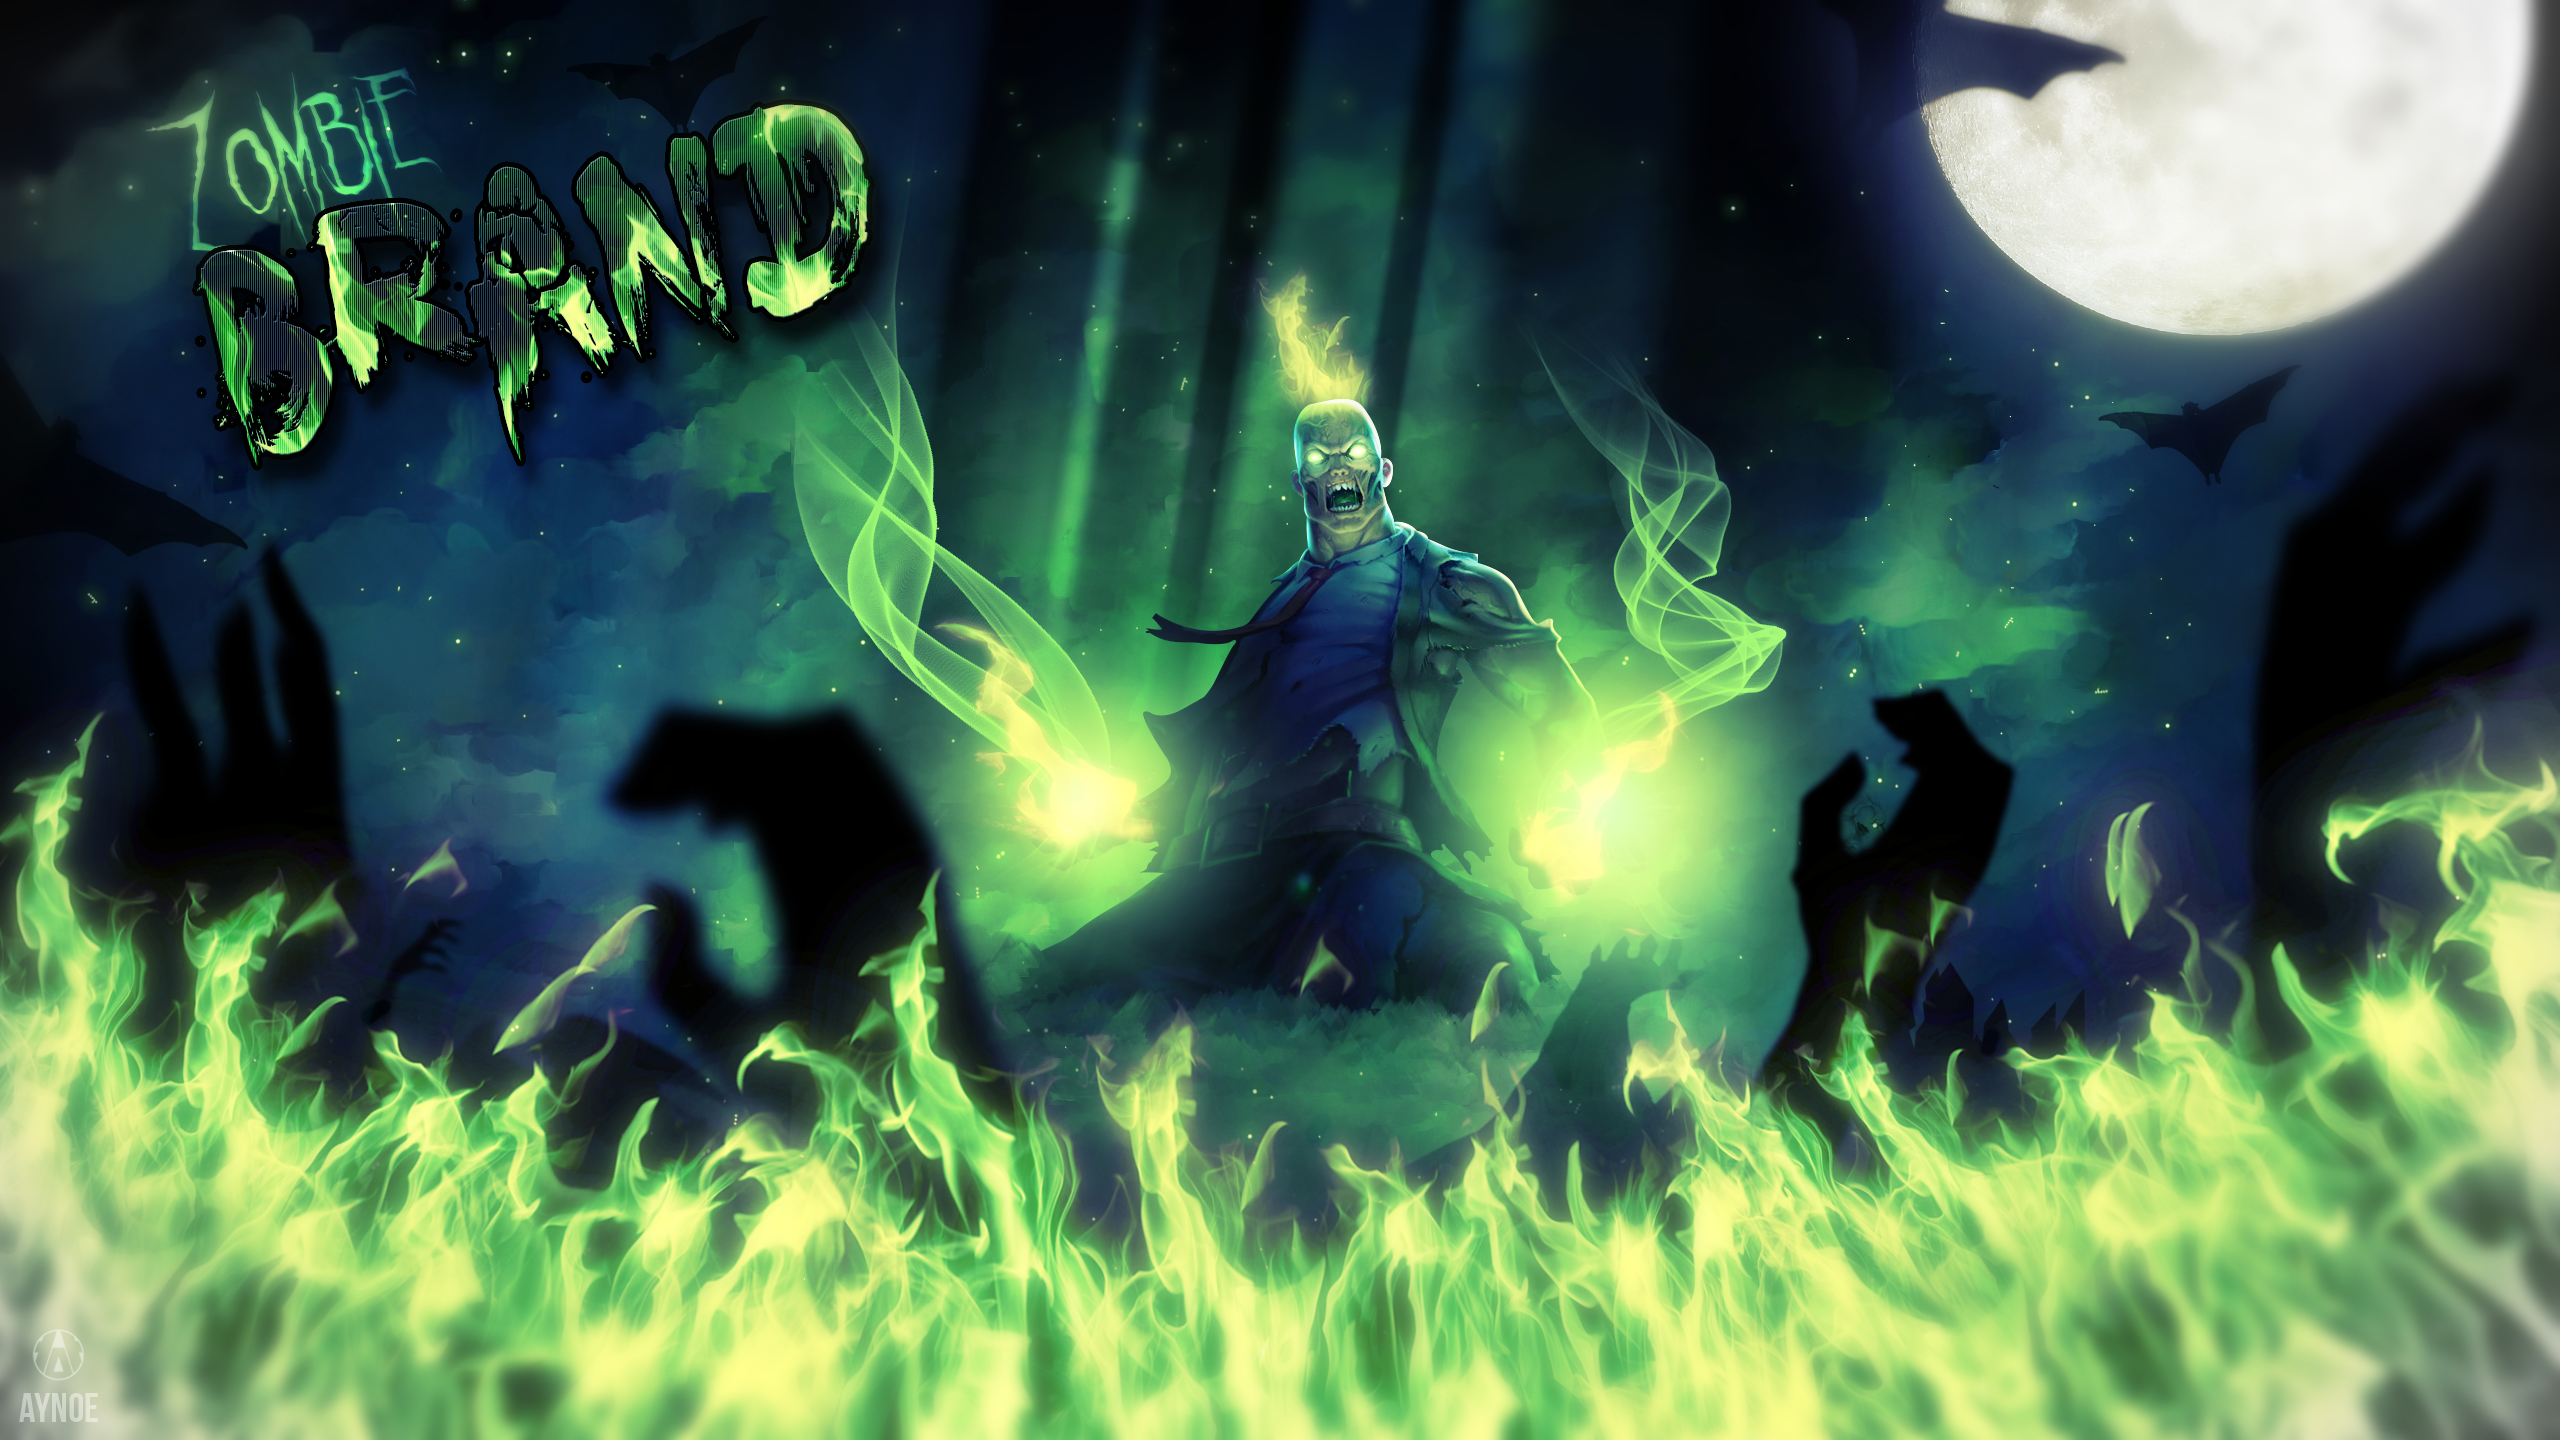 Wallpaper HD - Zombie Brand - League of Legends by Aynoe ...